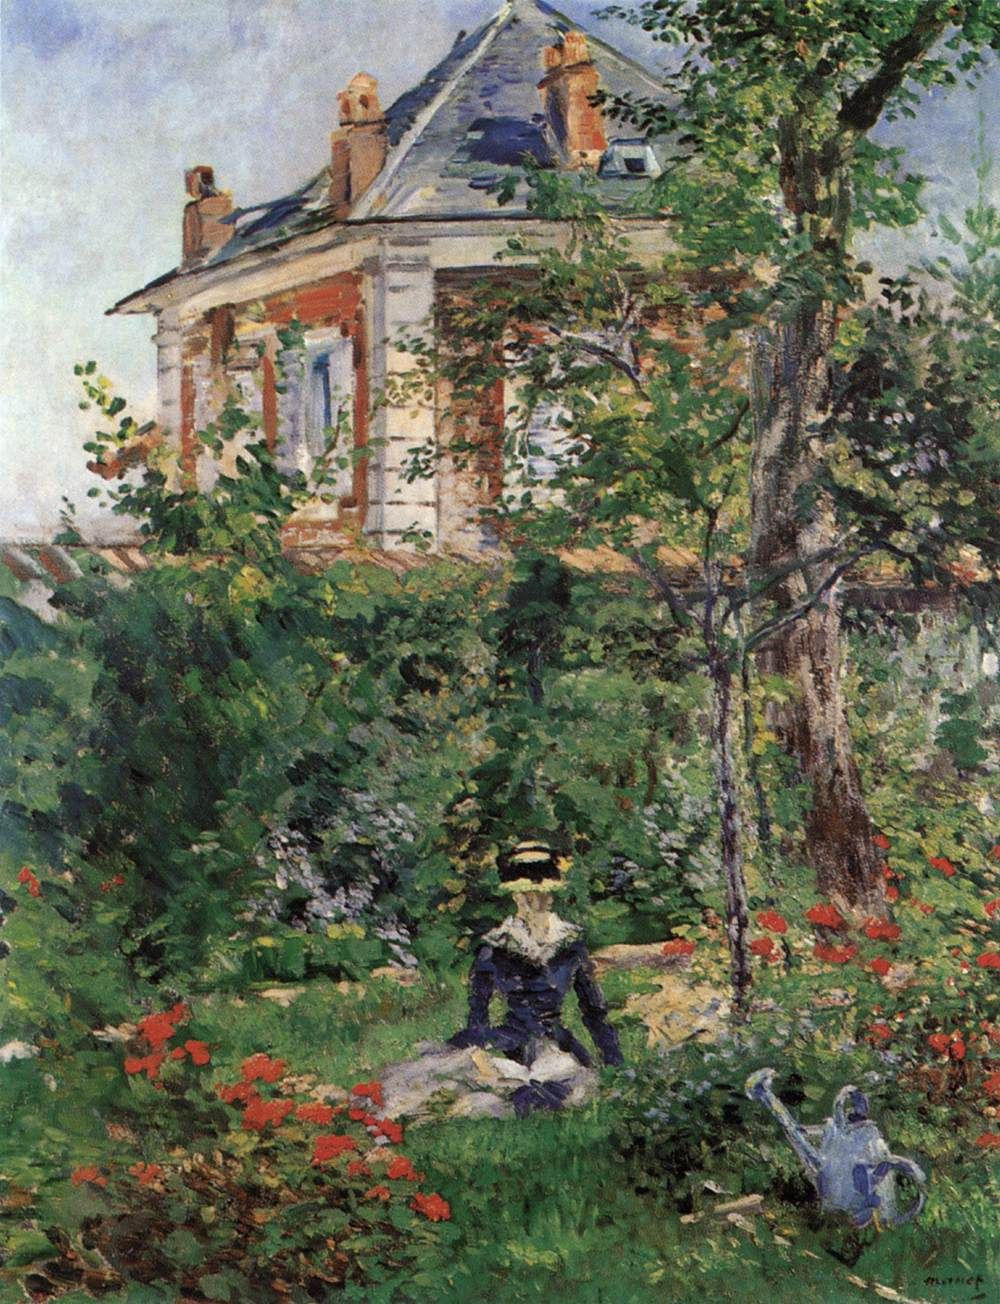 In The Garden Of The Villa Bellevue 1880 Edouard Manet French